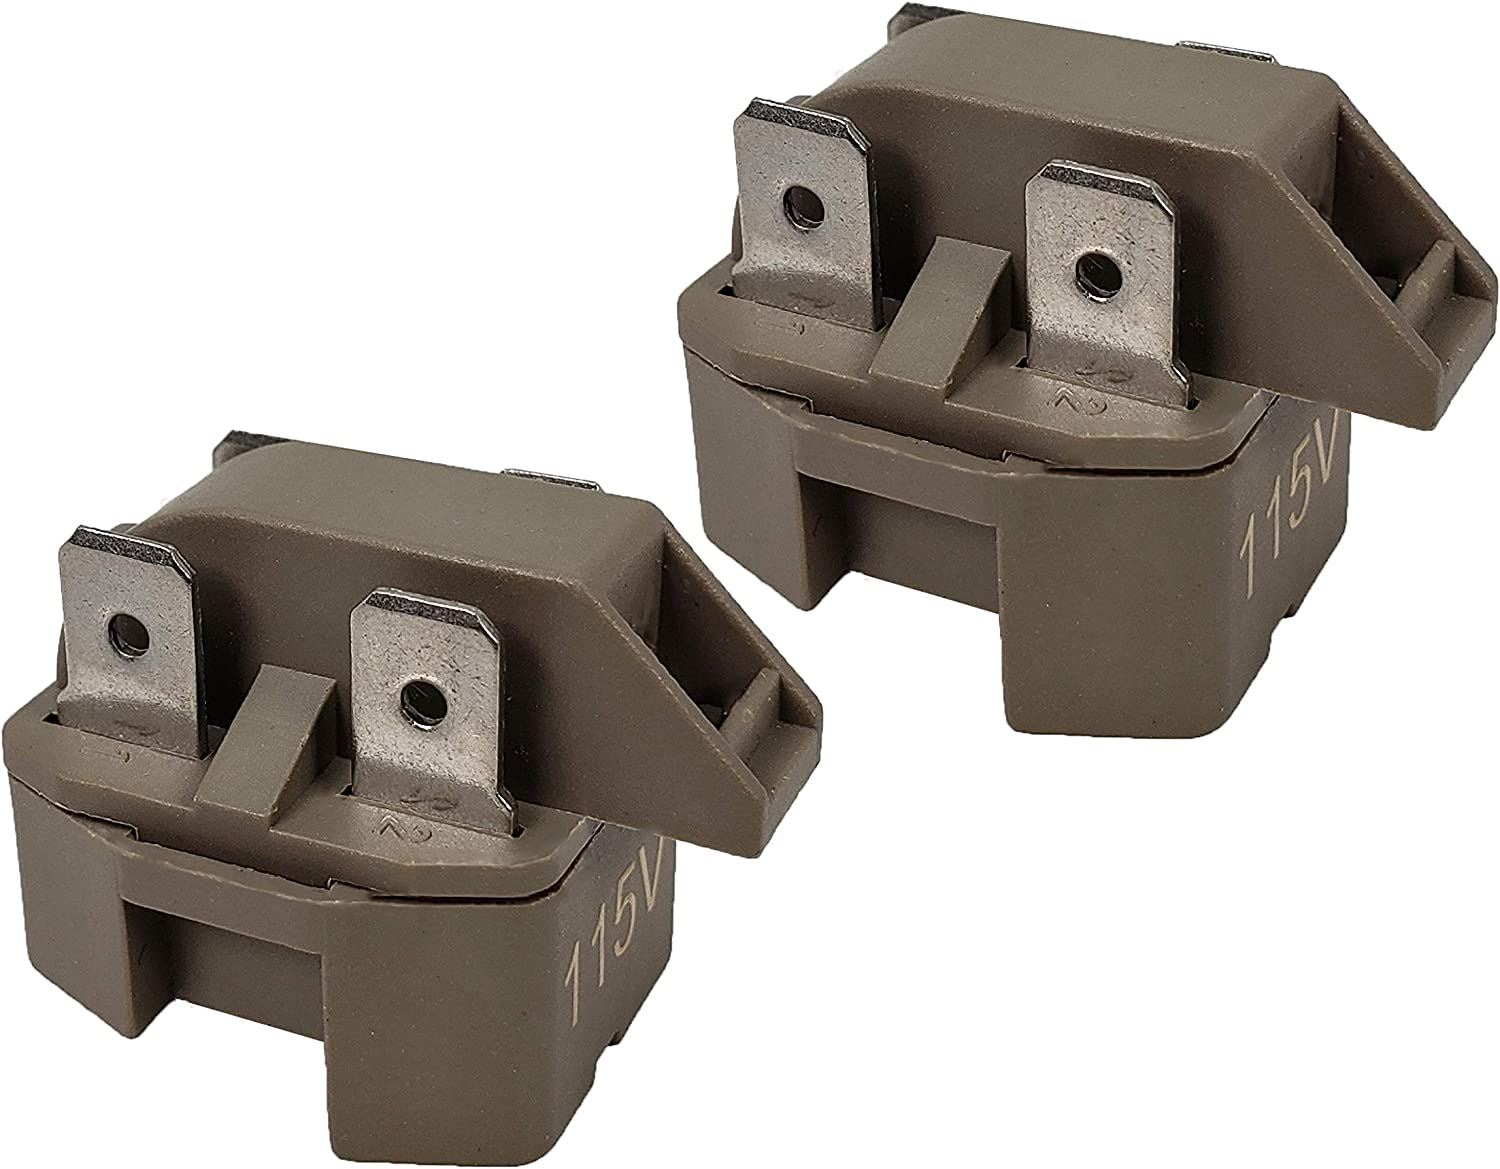 Runner IC-4 Refrigerator Freezer Compressor PTC Start Relay for Frigidaire Gibson GE Whirlpool Ropper Kenmore Replace 32330 WP2262185 WR07X26748 4387913 216594300 (2 Pack)